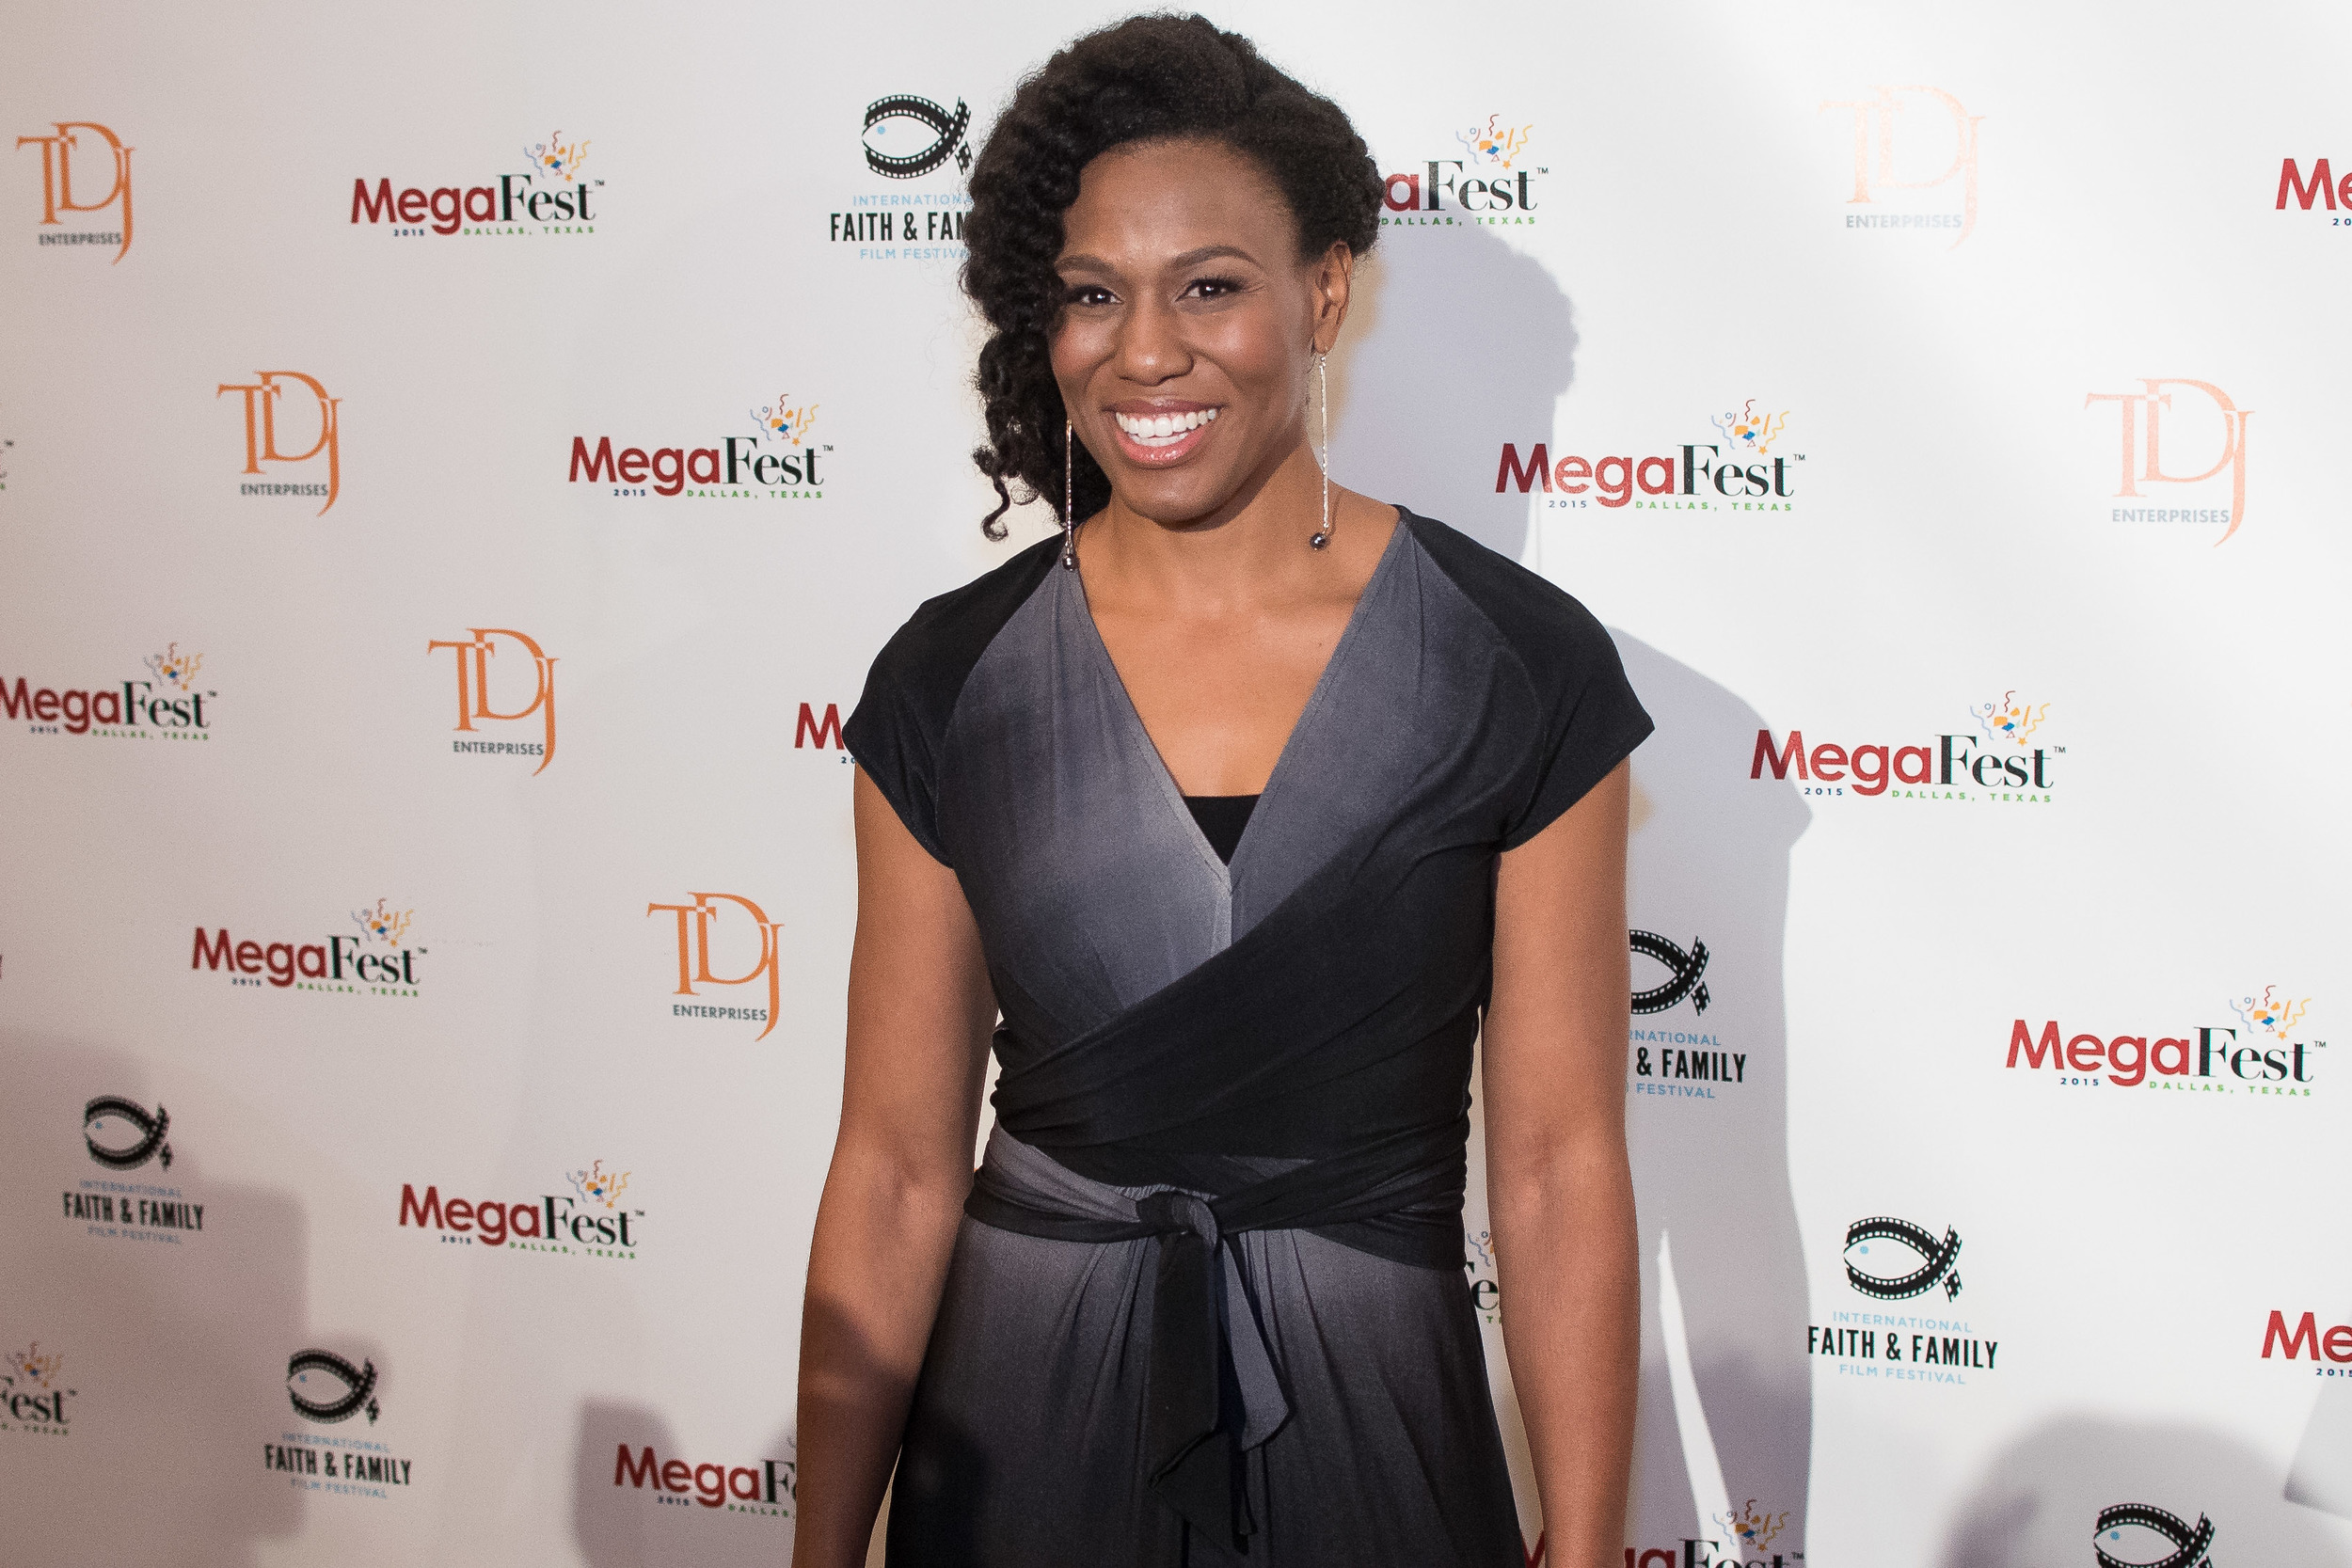 Priscilla Shirer at the Film Festival for War Room